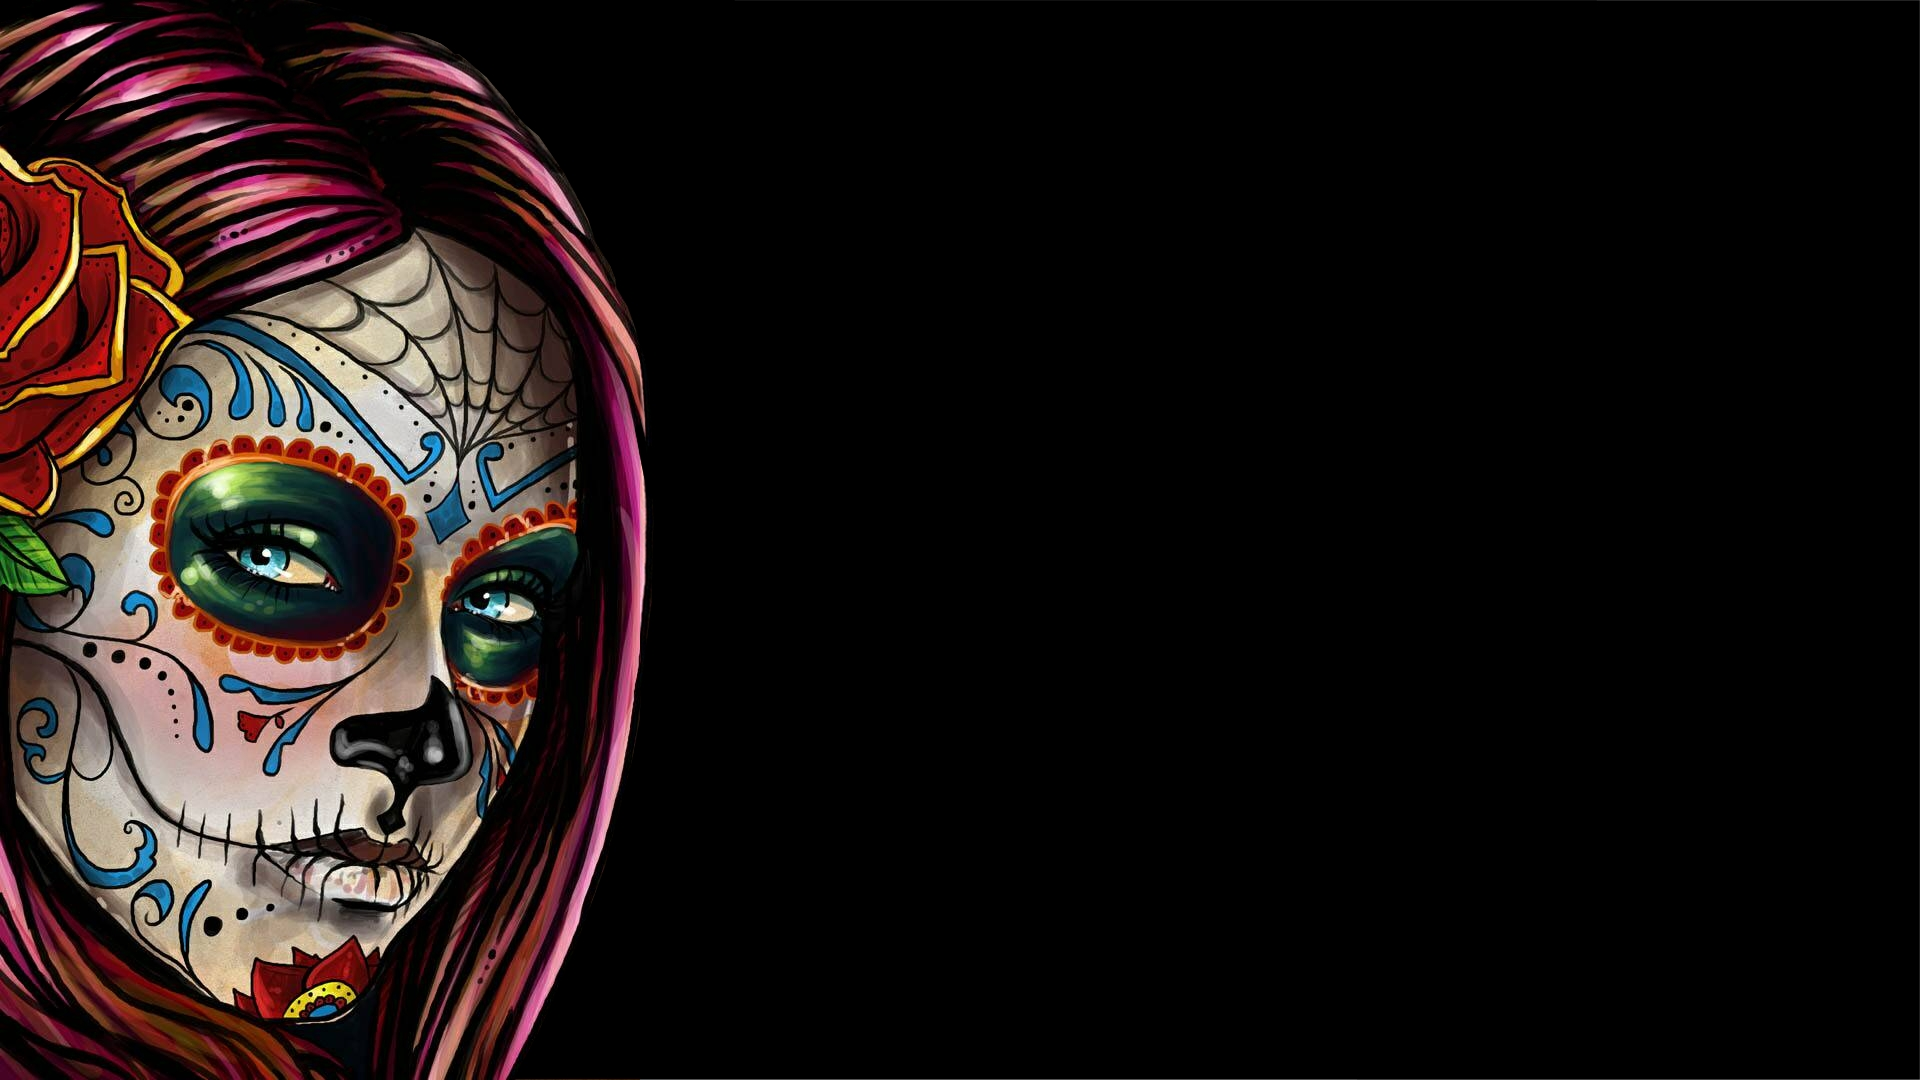 Related Pictures sugar skull vector ipad wallpapers and s 9WbTP9rL